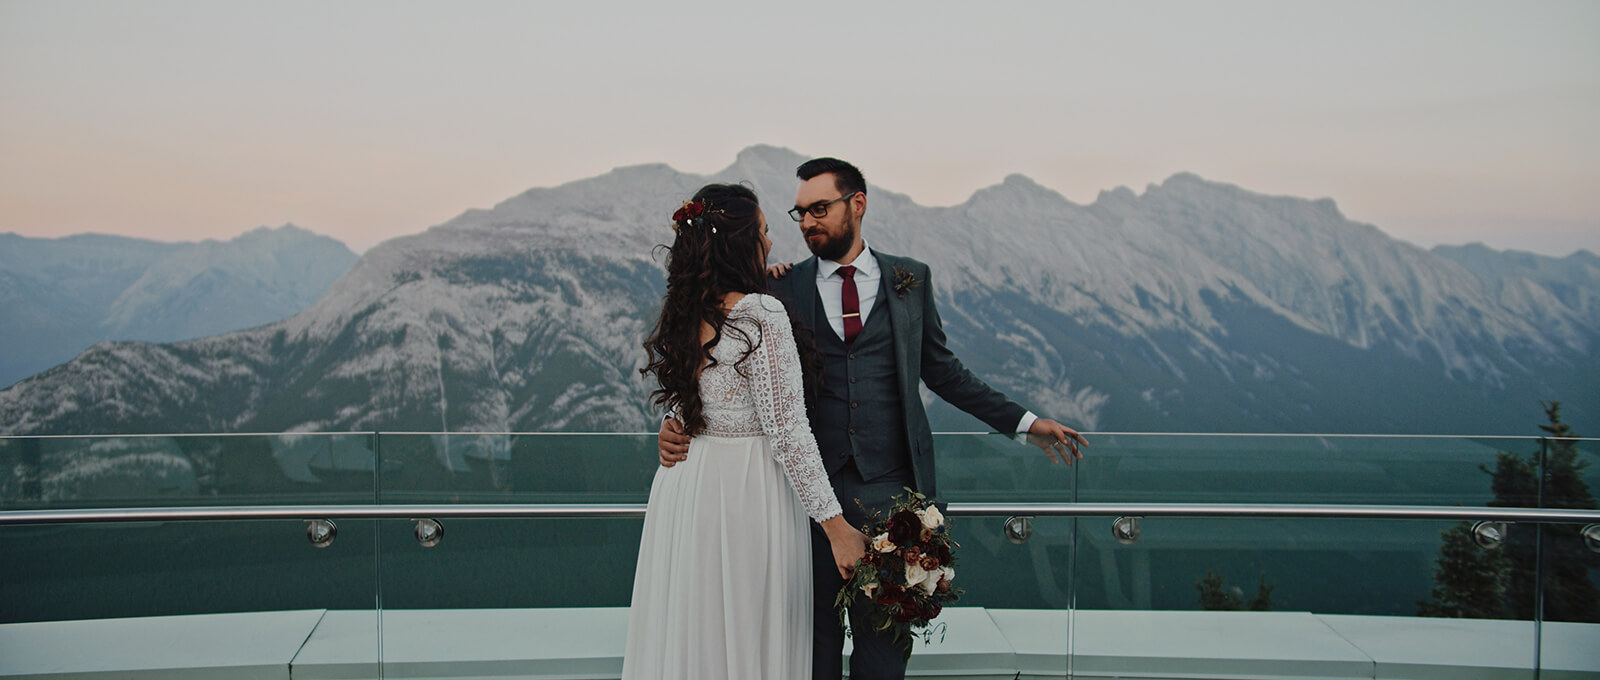 Sarah and Chris's Banff wedding film